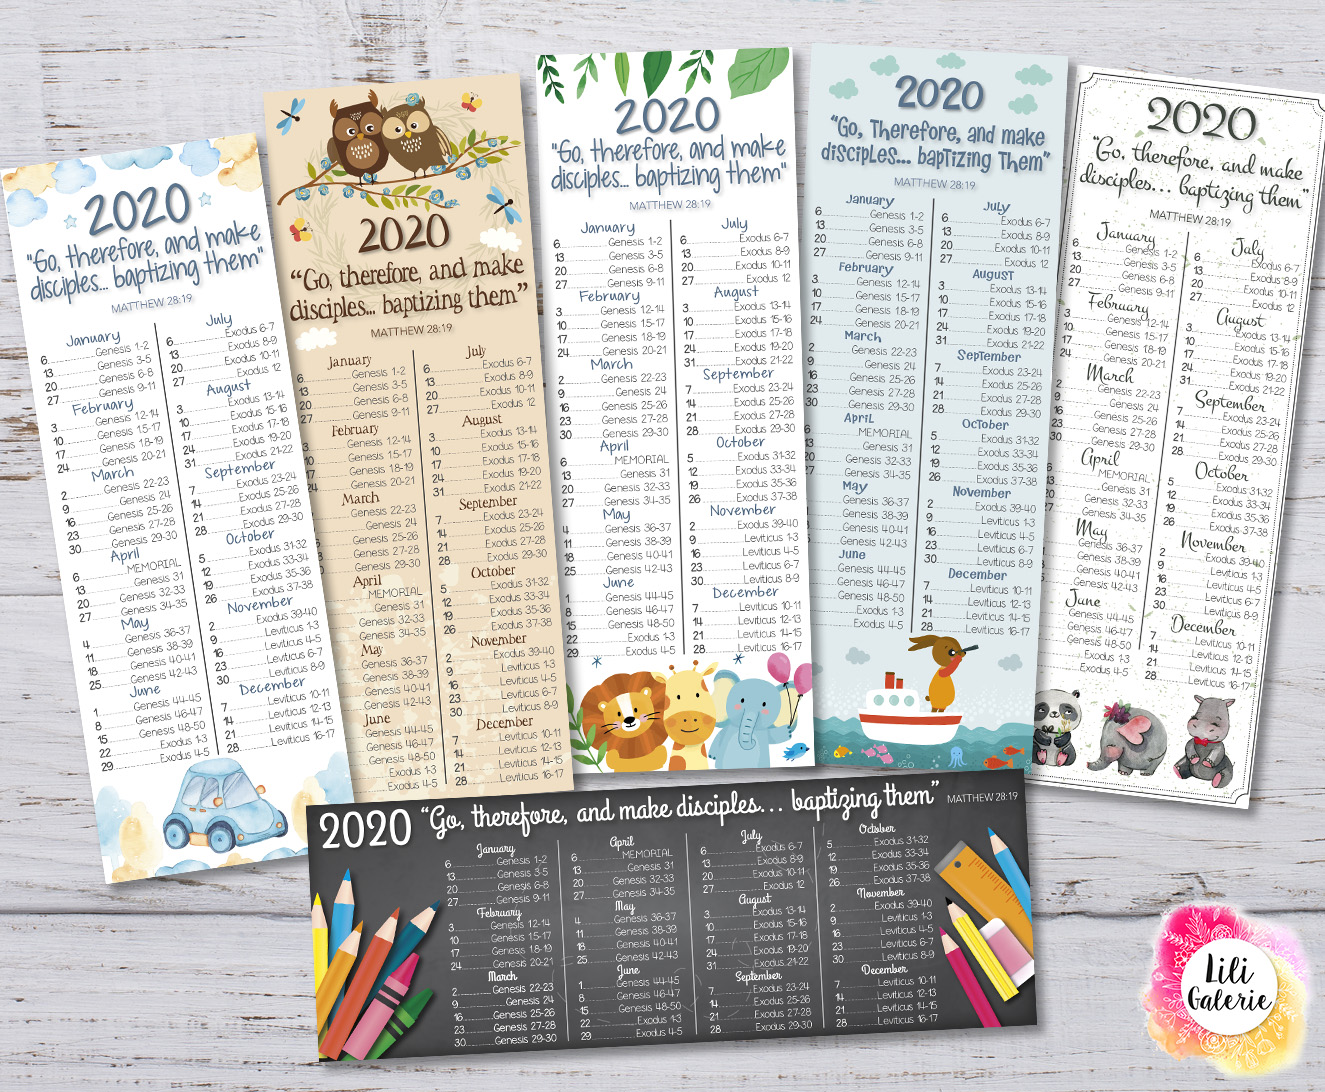 2020 Bible reading bookmarks for children